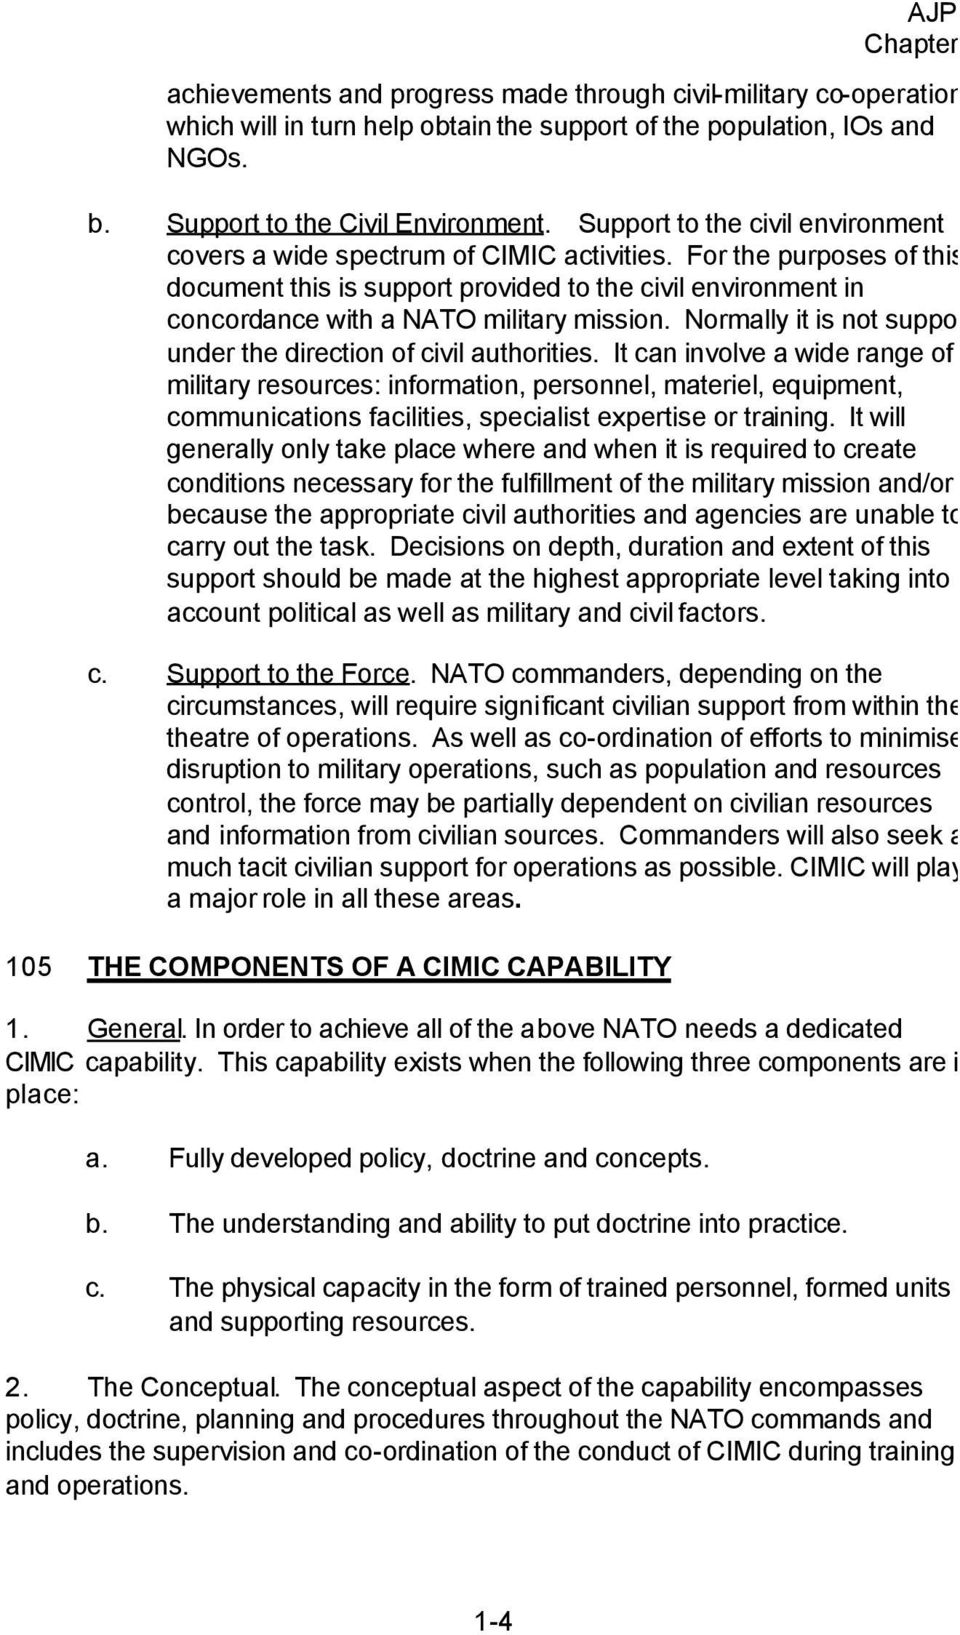 For the purposes of this document this is support provided to the civil environment in concordance with a NATO military mission. Normally it is not support under the direction of civil authorities.